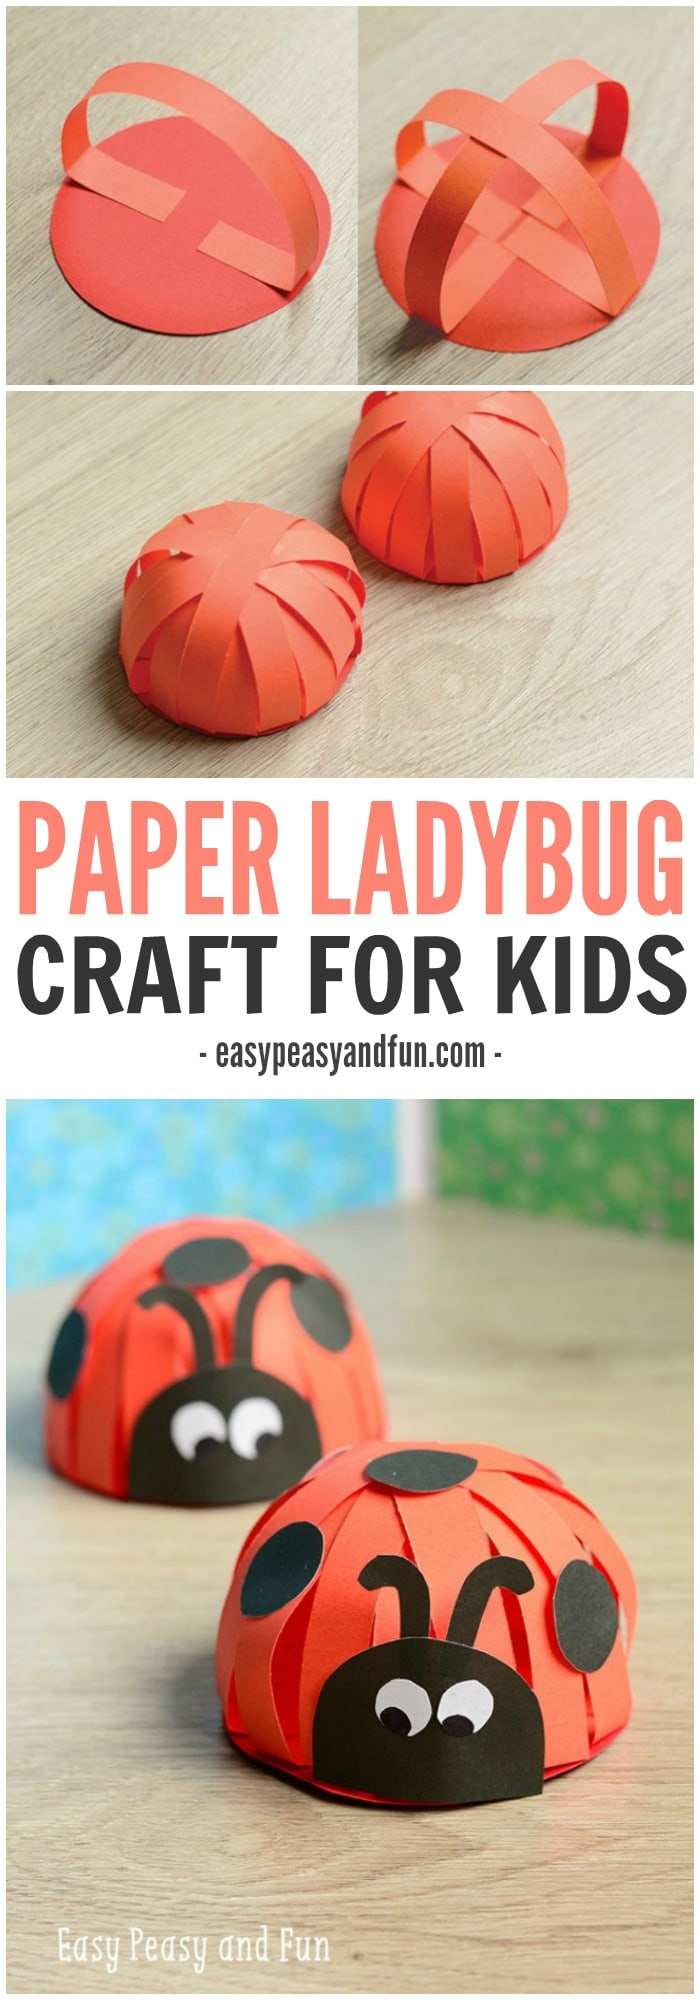 Easy Peasy And Fun: Paper Ladybug Craft